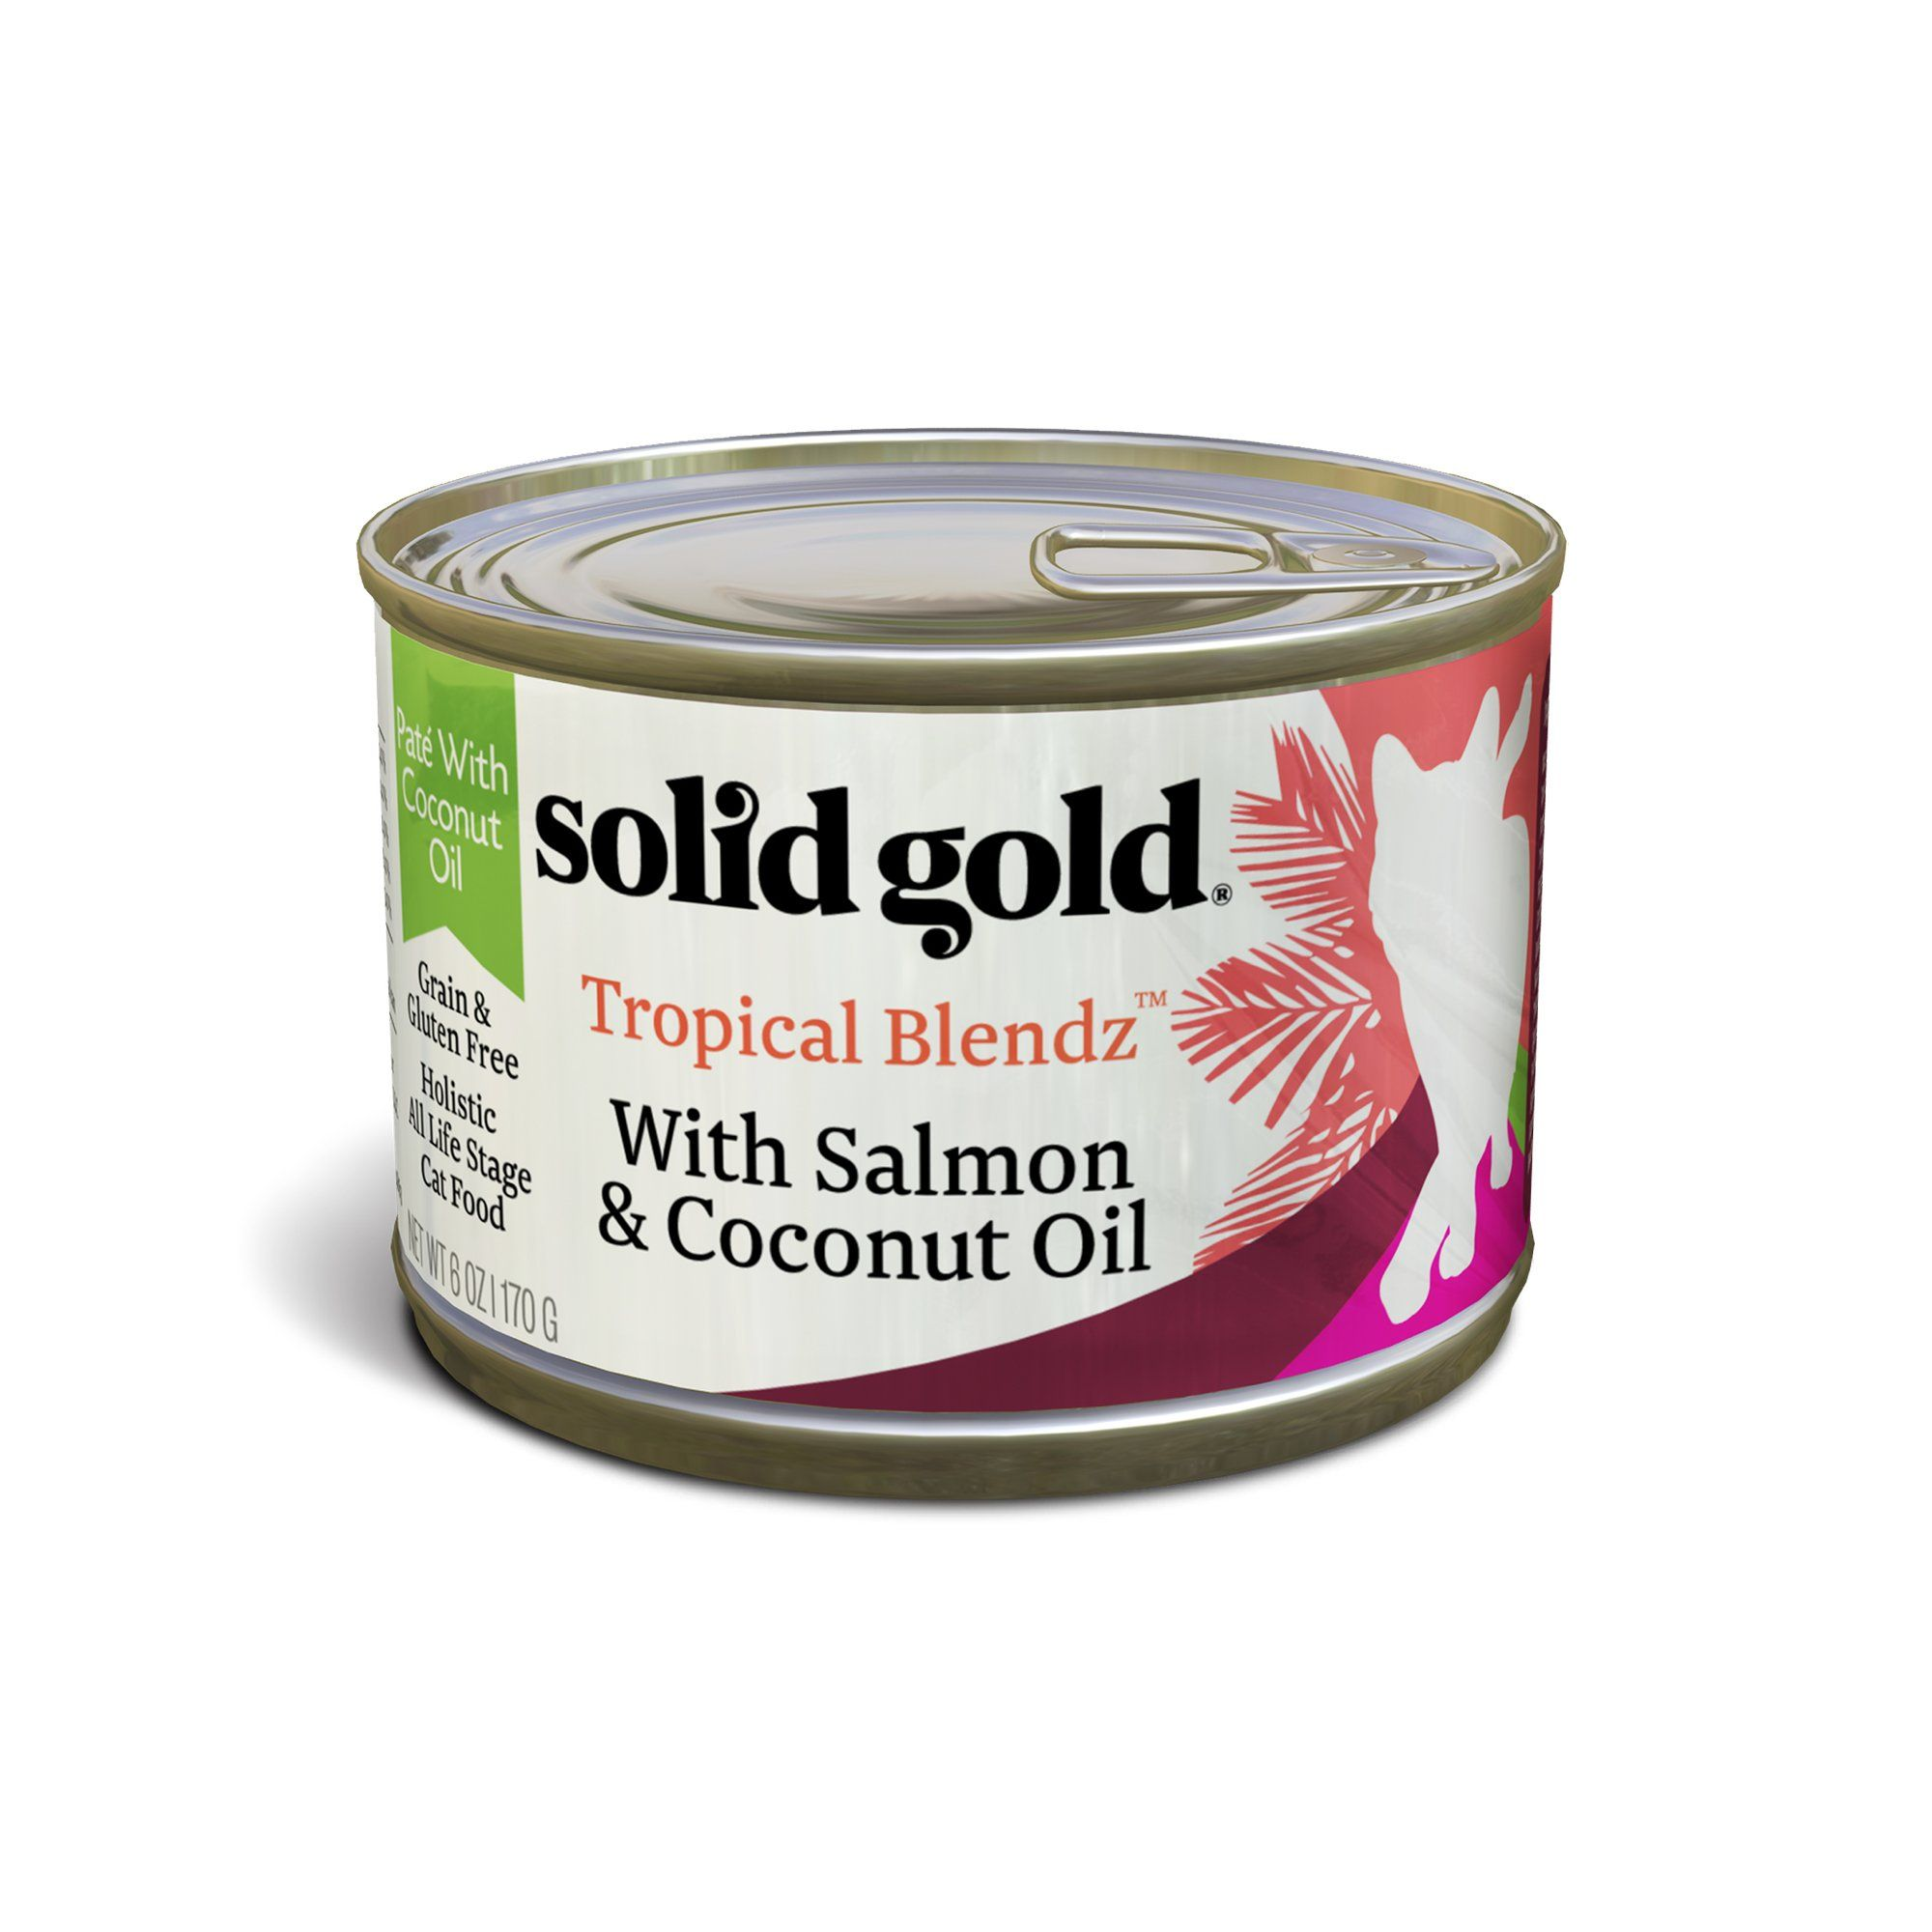 Solid Gold Tropical Blendz Salmon & Coconut Oil Pate Cat